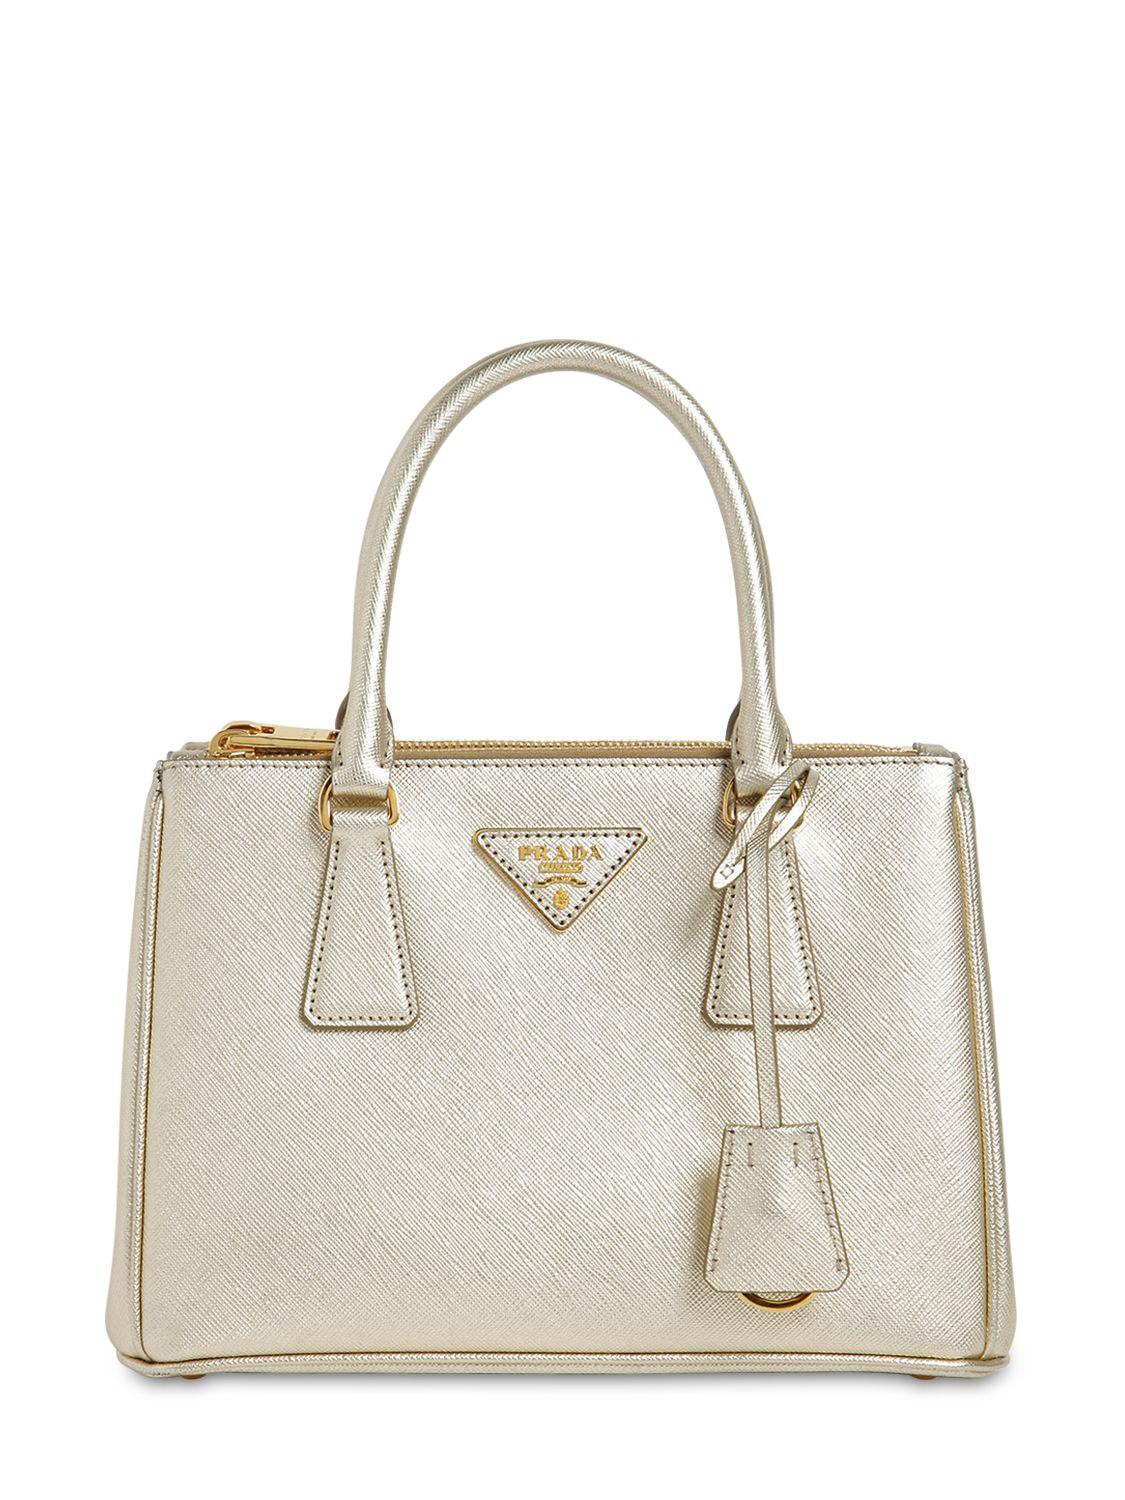 770d0d964f Prada Small Galleria Saffiano Leather Bag in Metallic - Lyst